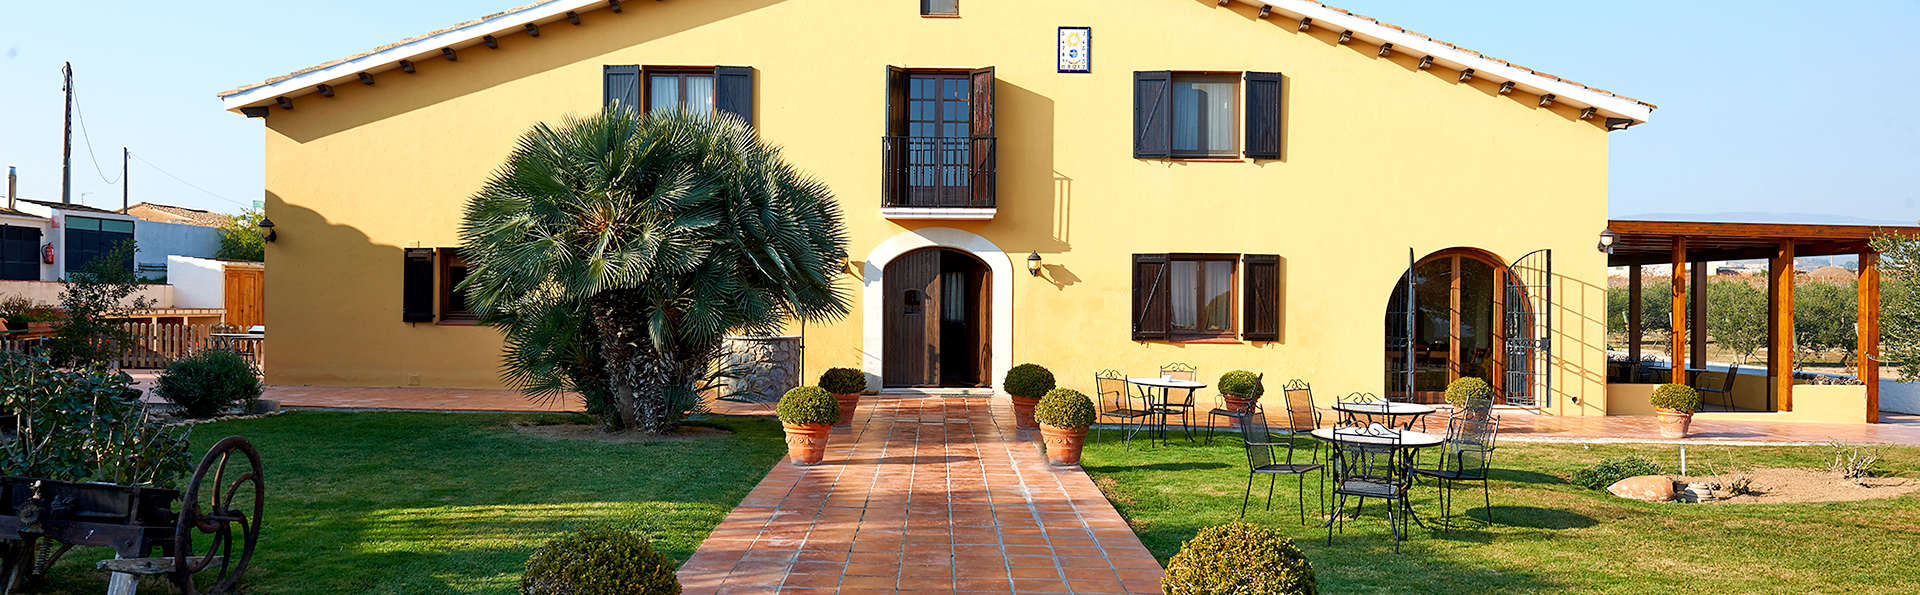 Hotel Rural Cal Ruget (Adults Only) - Edit_Front2.jpg